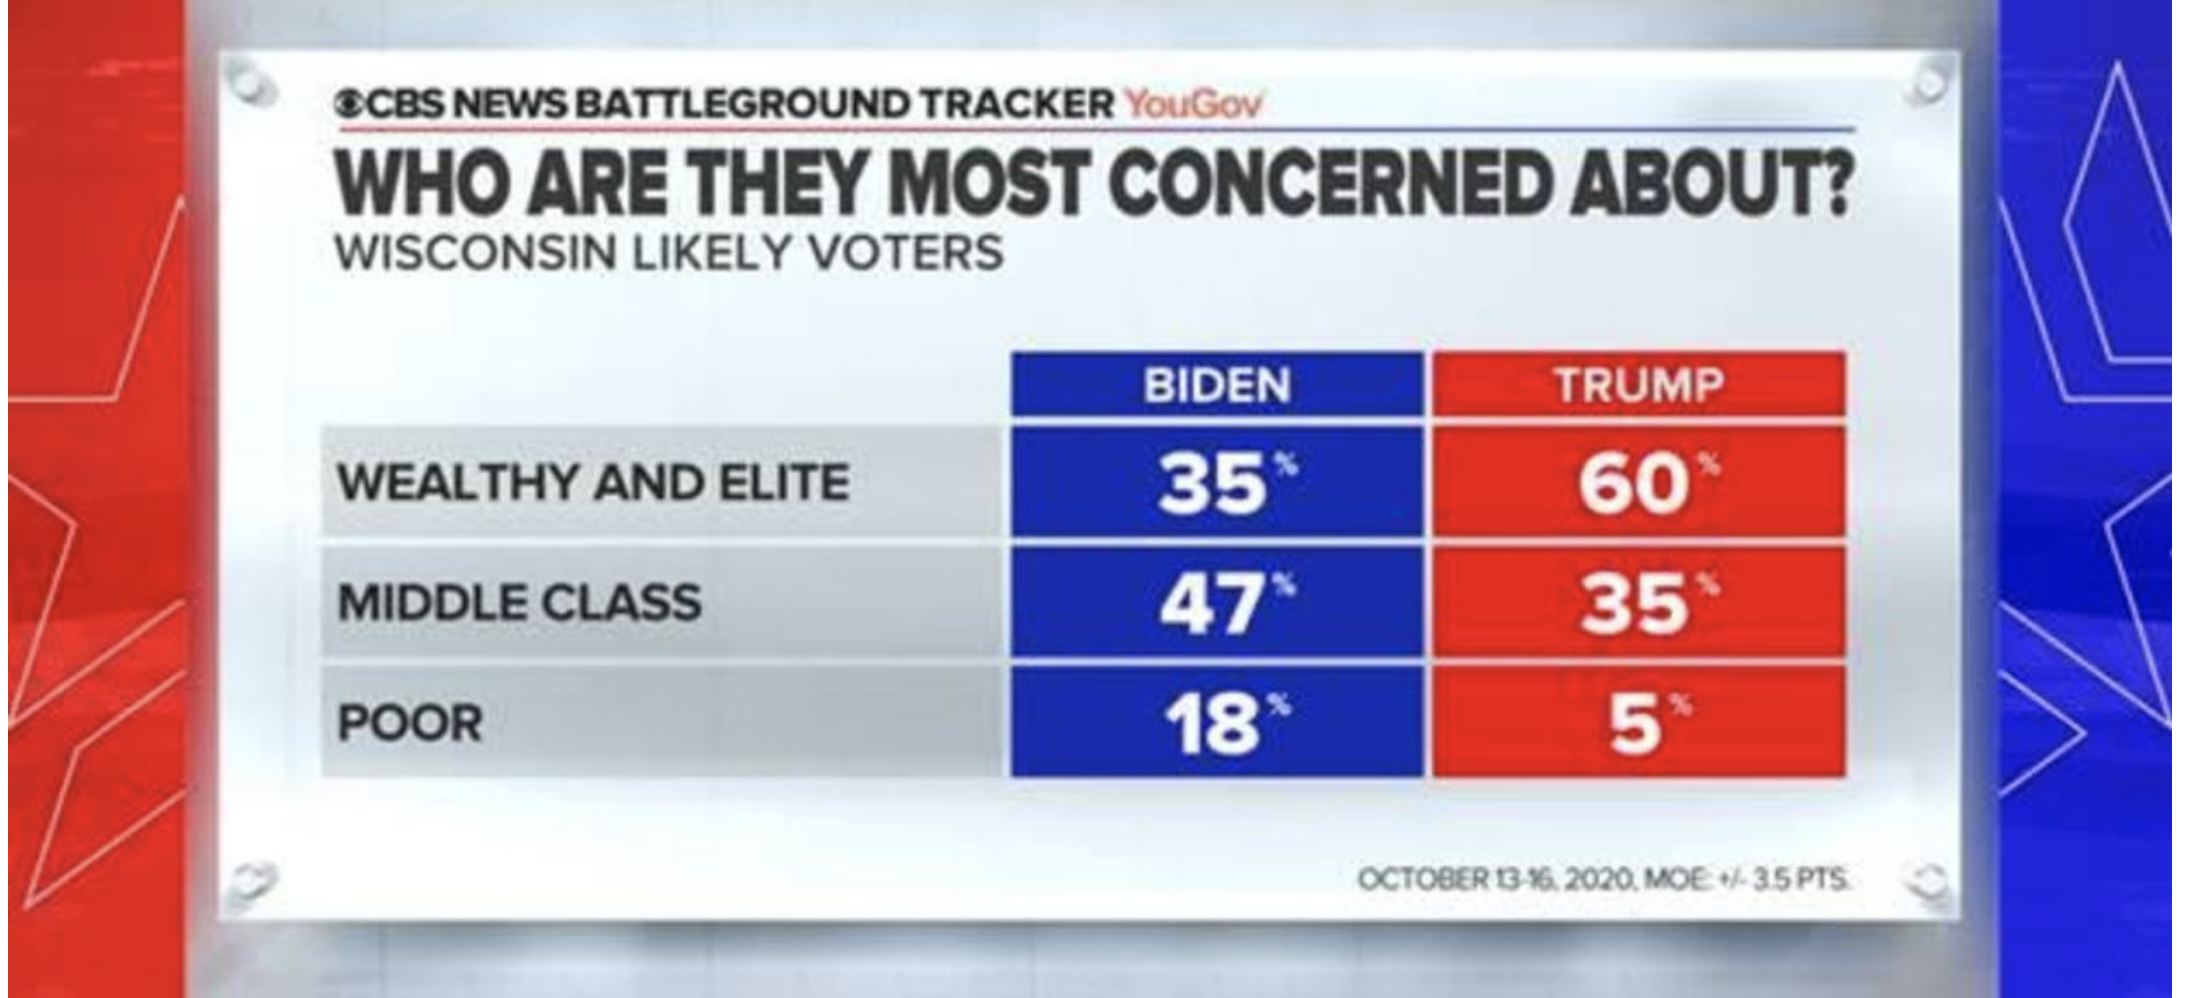 Screen-Shot-2020-10-18-at-11.52.37-AM Updated 'Swing State' Poll Results Show Dramatic Double-Digit Gap Election 2020 Featured Politics Polls Top Stories